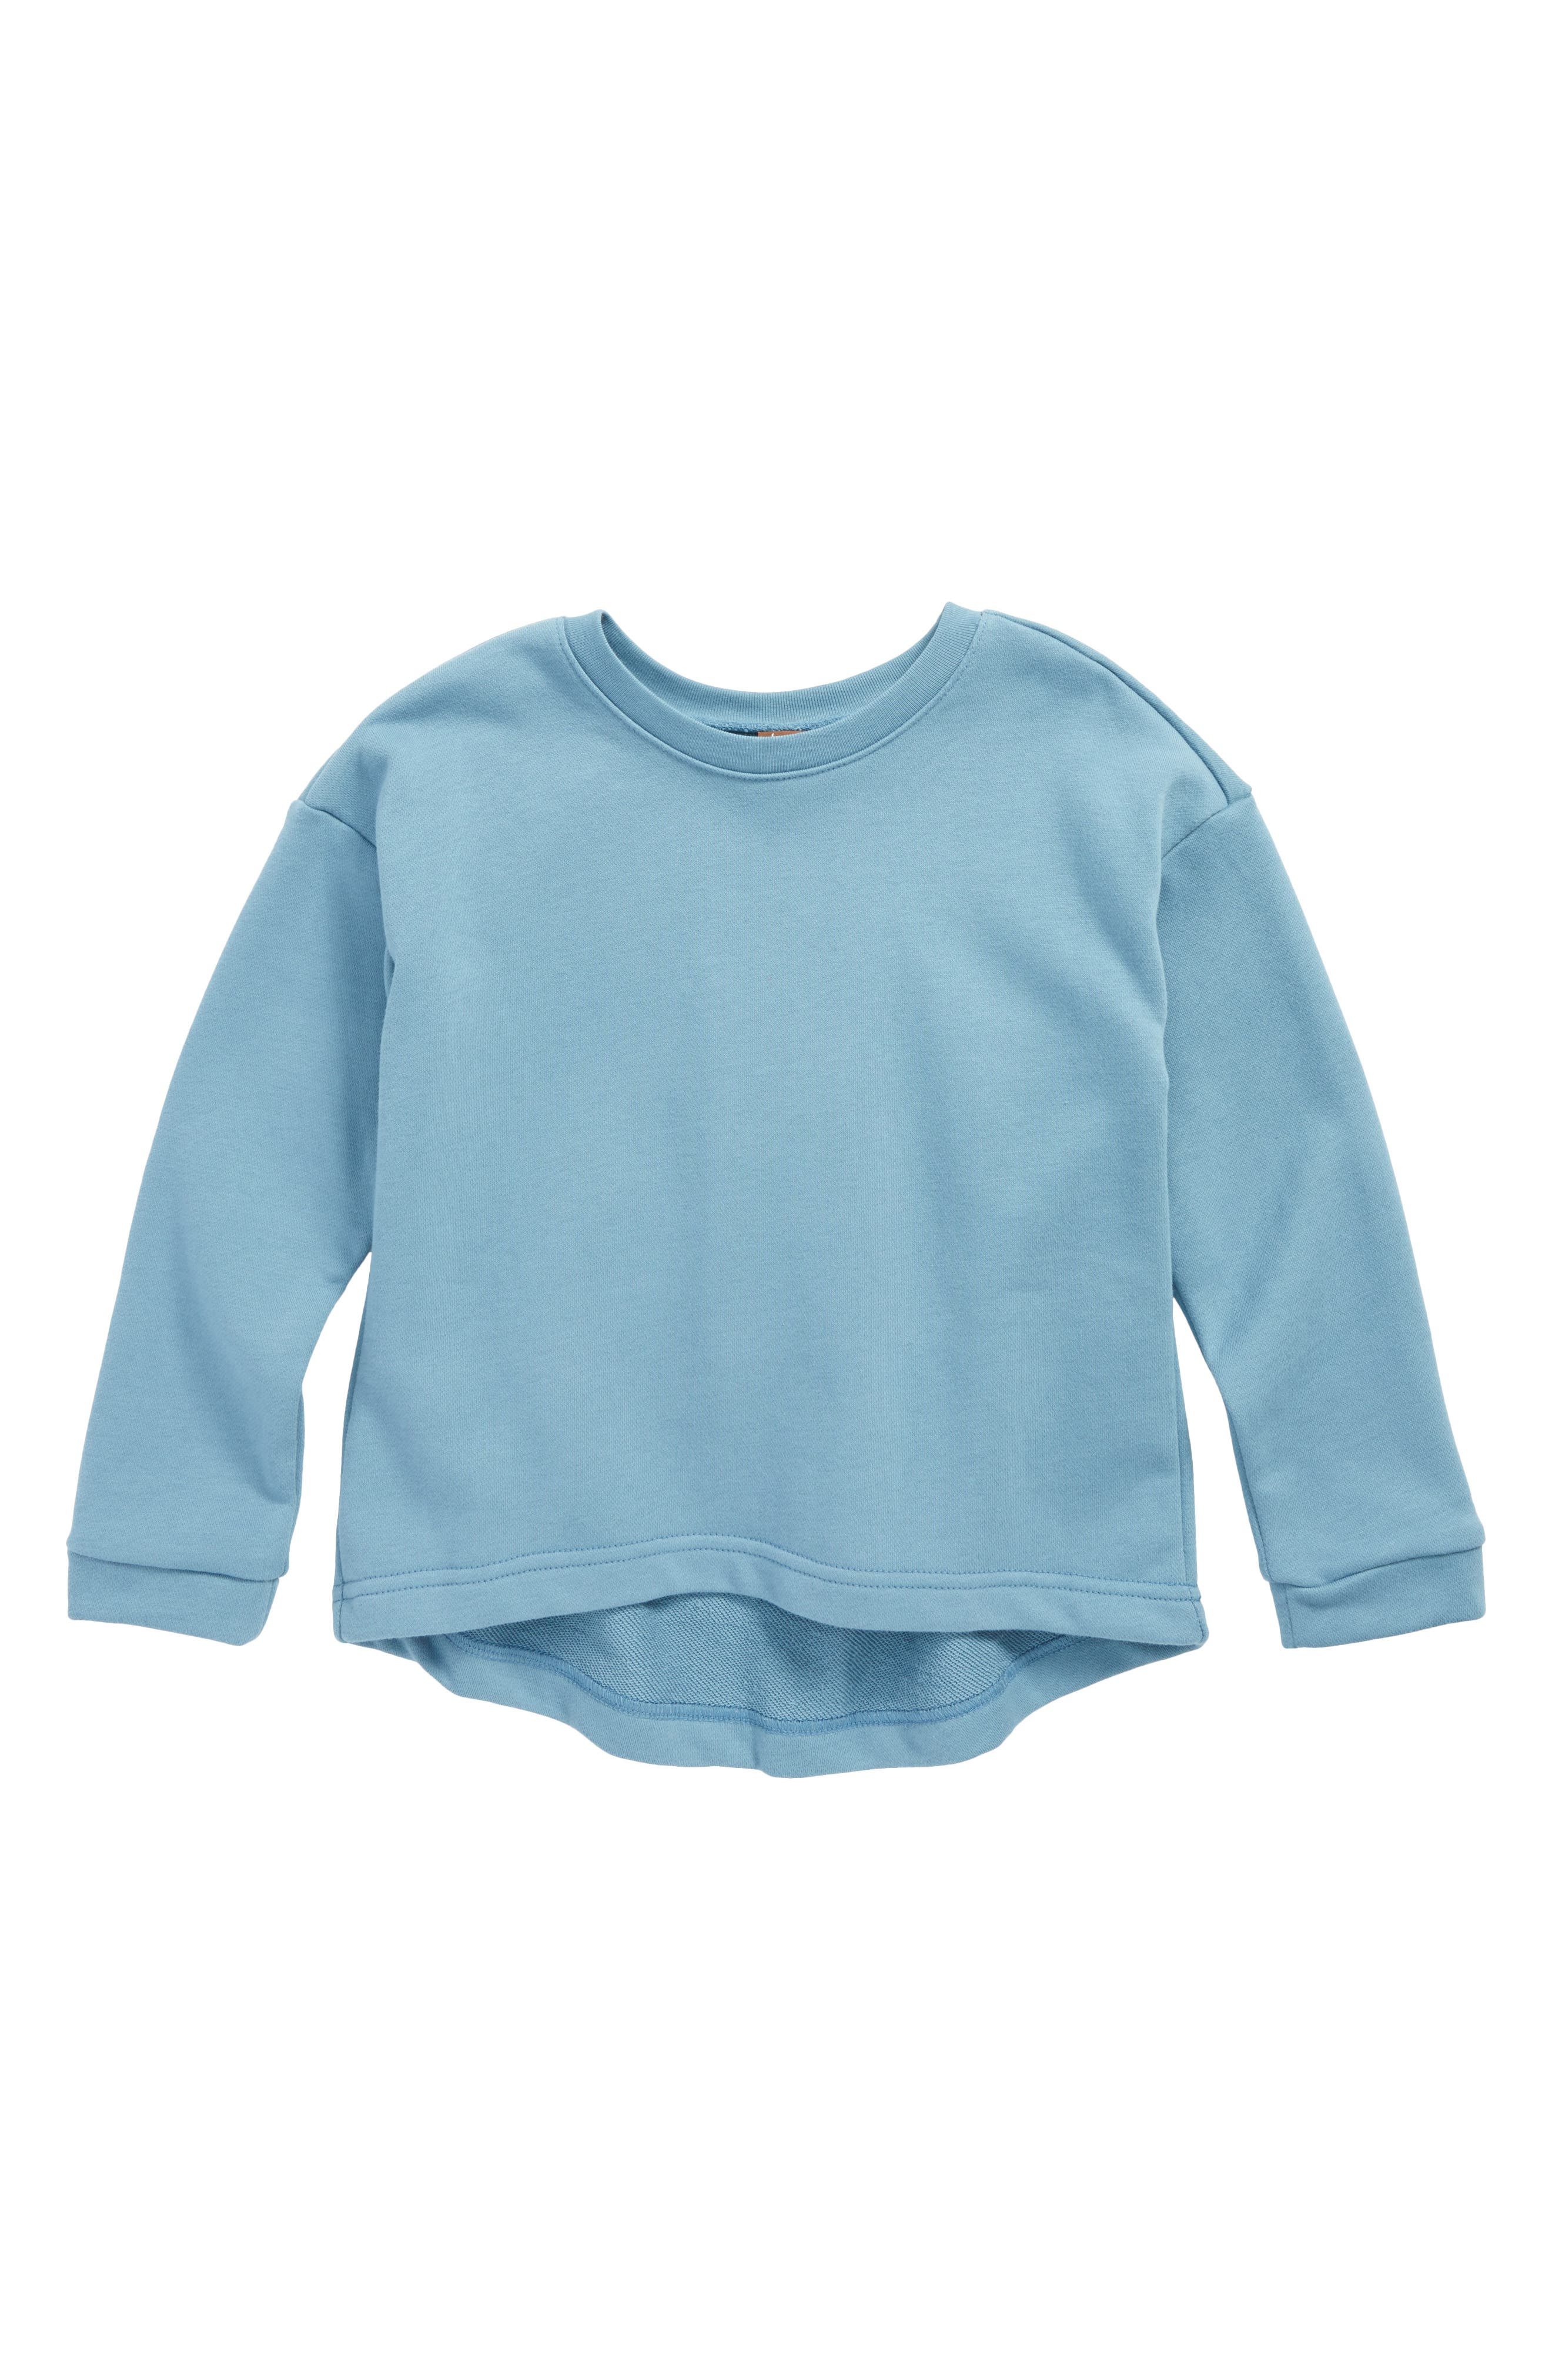 Fairy Wings Pullover,                         Main,                         color,